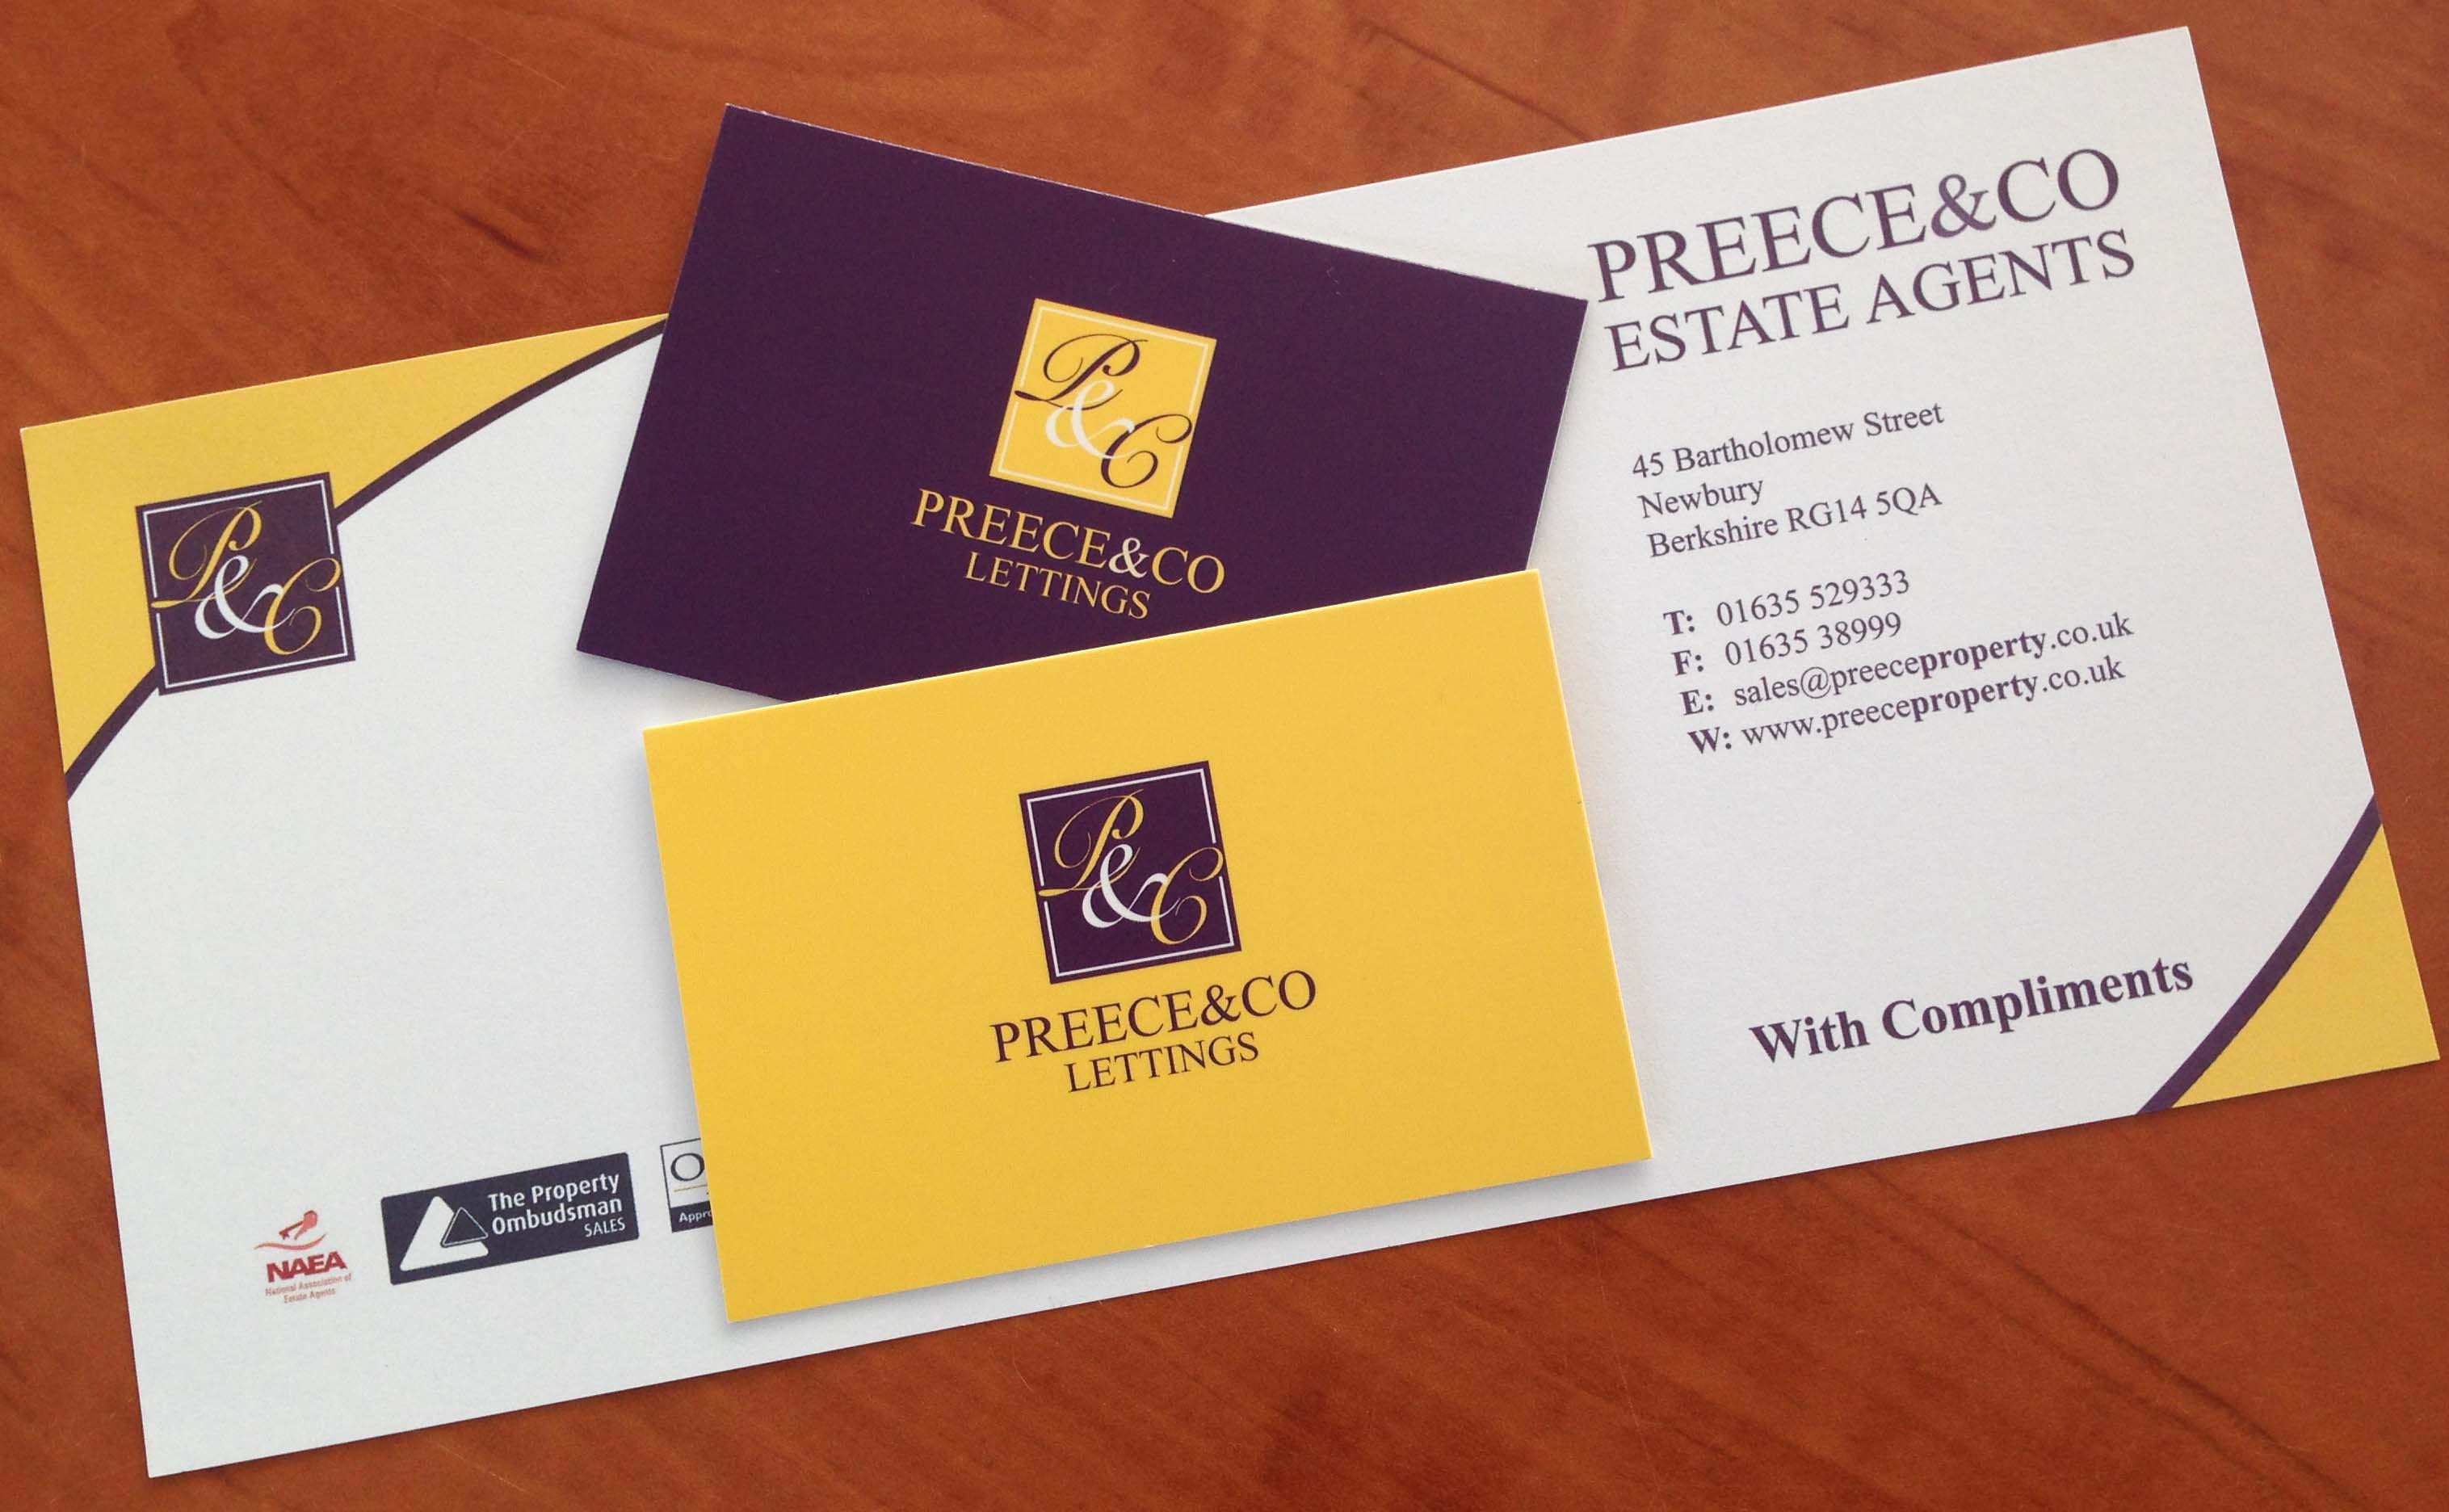 Compliment Slip & Business Cards Pri